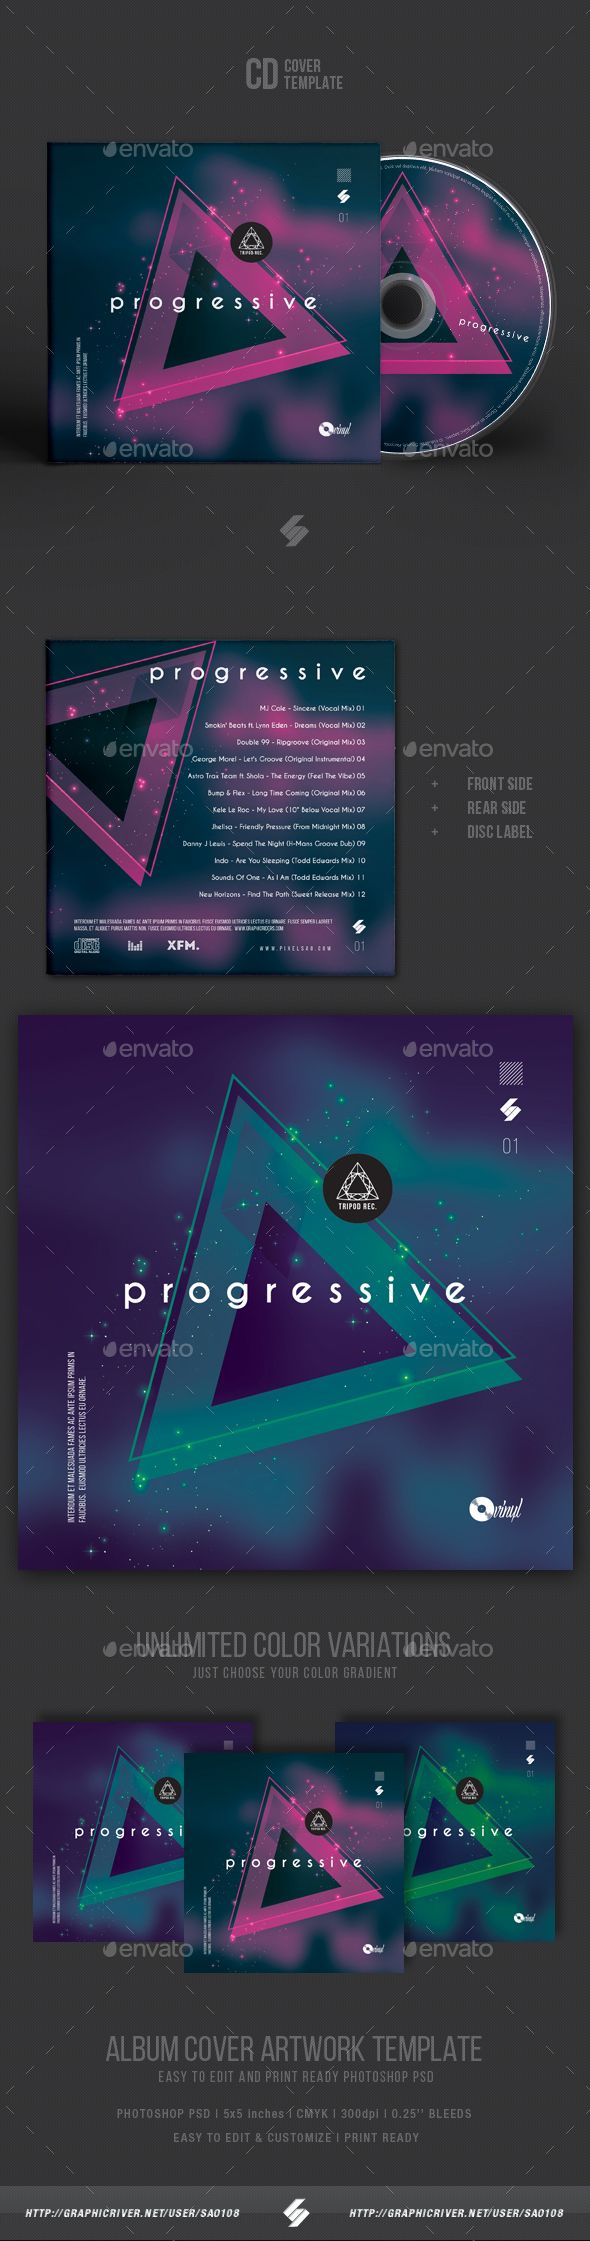 CD / DVD album cover artwork template for DJs and producers